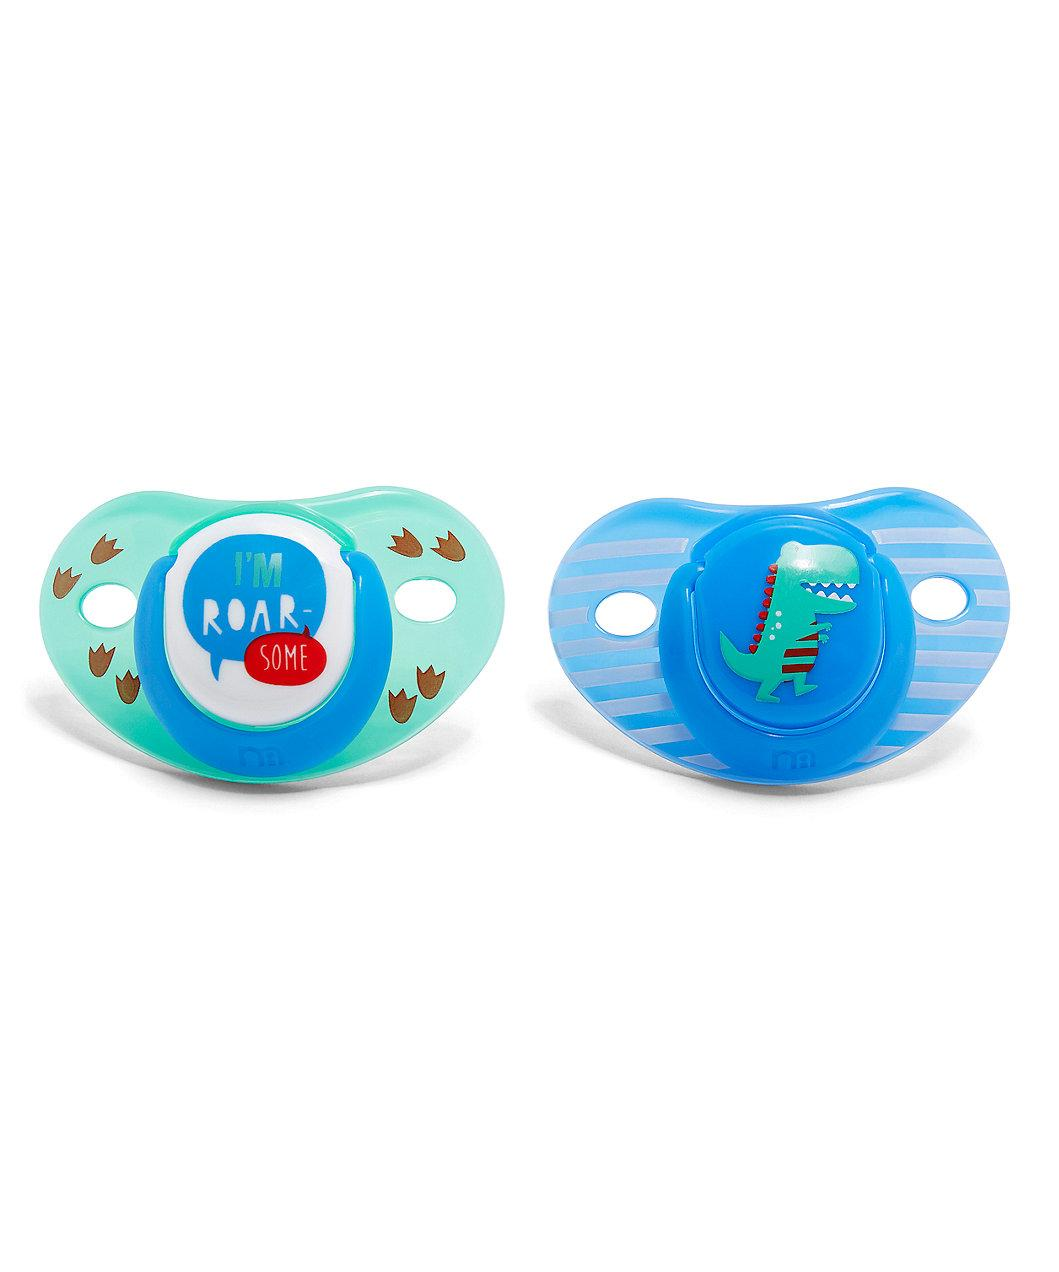 Mothercare Orthodontic Soothers 6 Months+ - Blue (2 Pack)